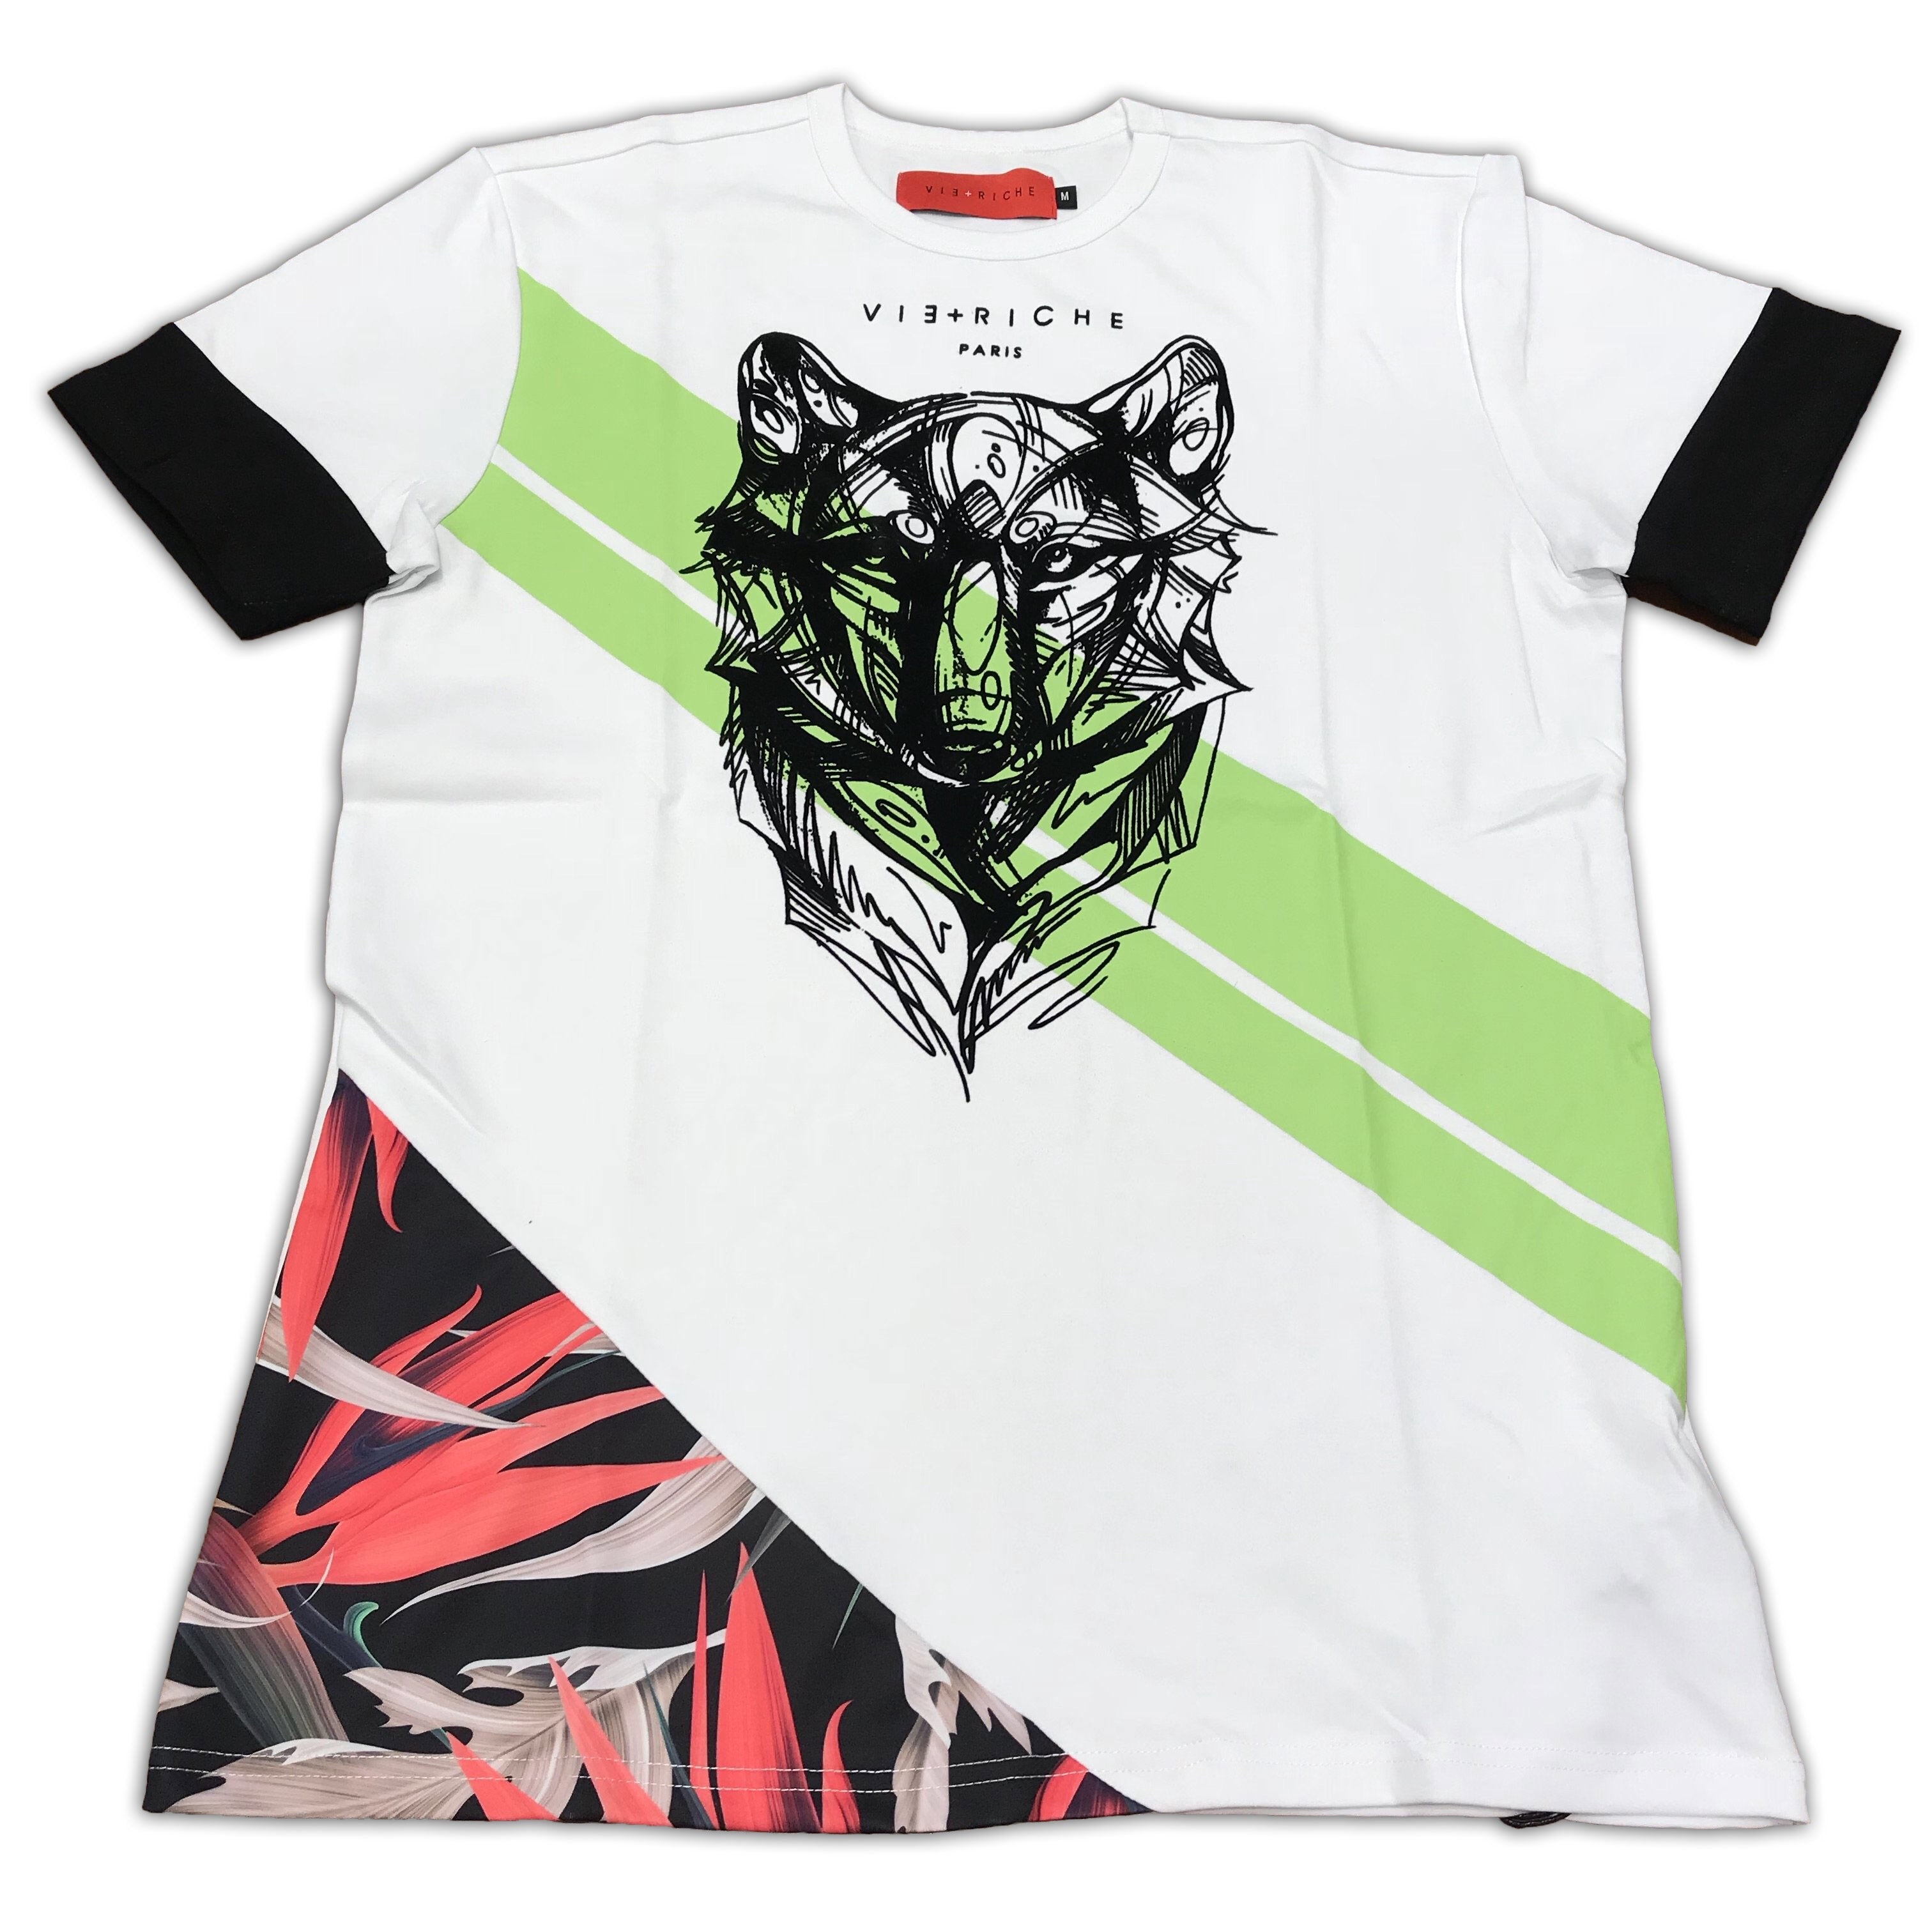 VIE RICHIE T SHIRT 03396